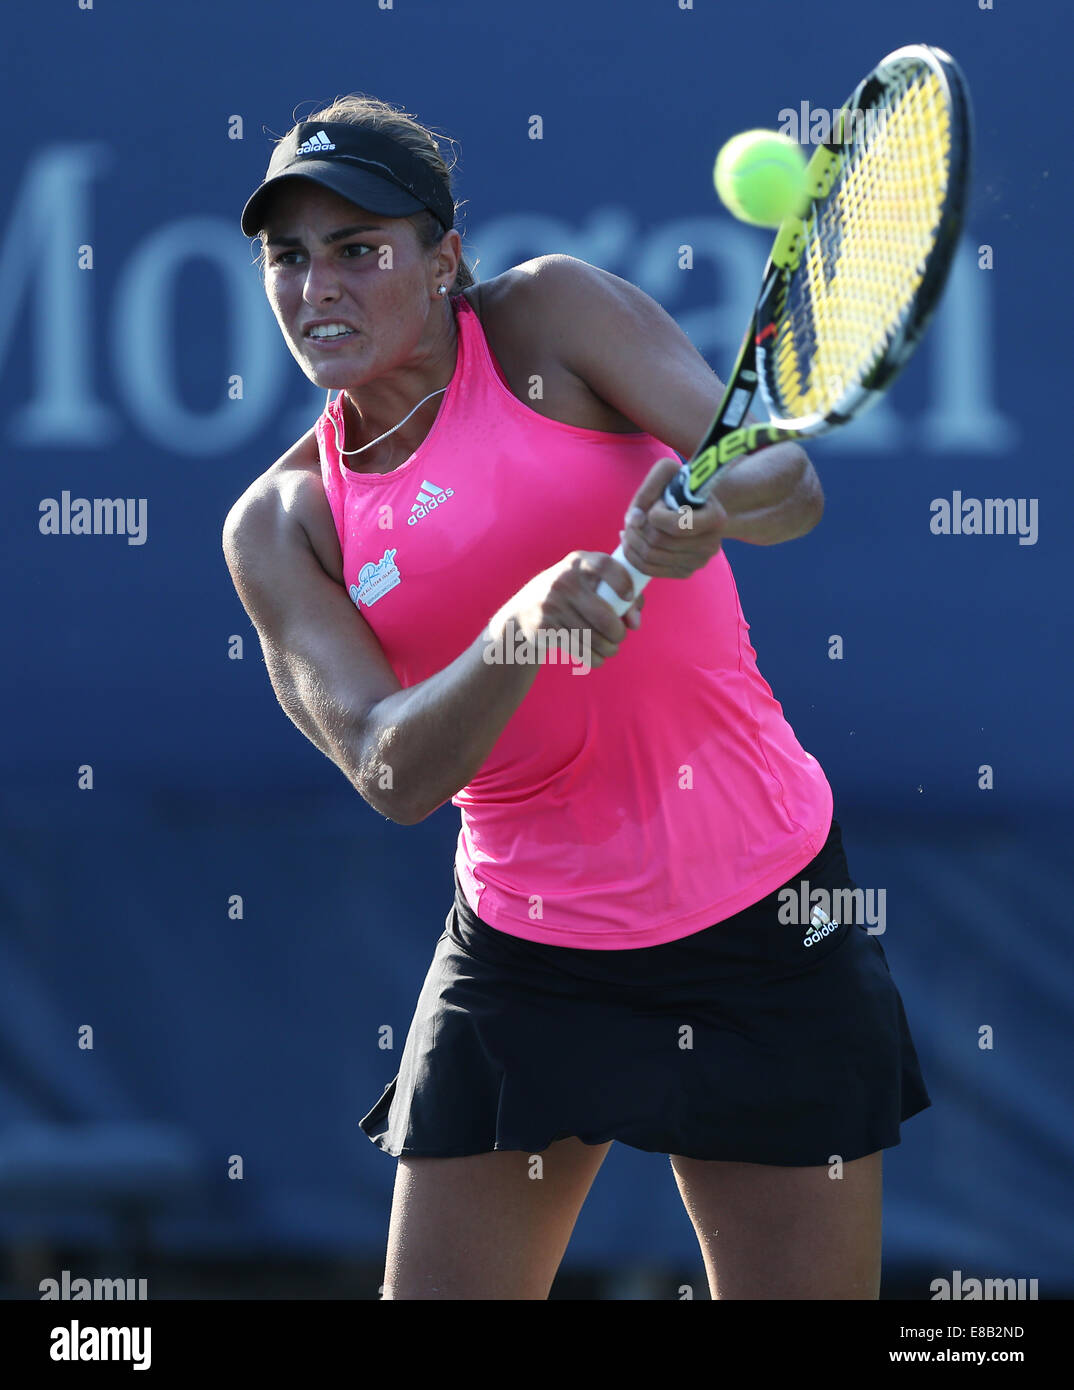 Monica  Puig (PUR ) in action at the US Open 2014 Championships in New York,USA - Stock Image